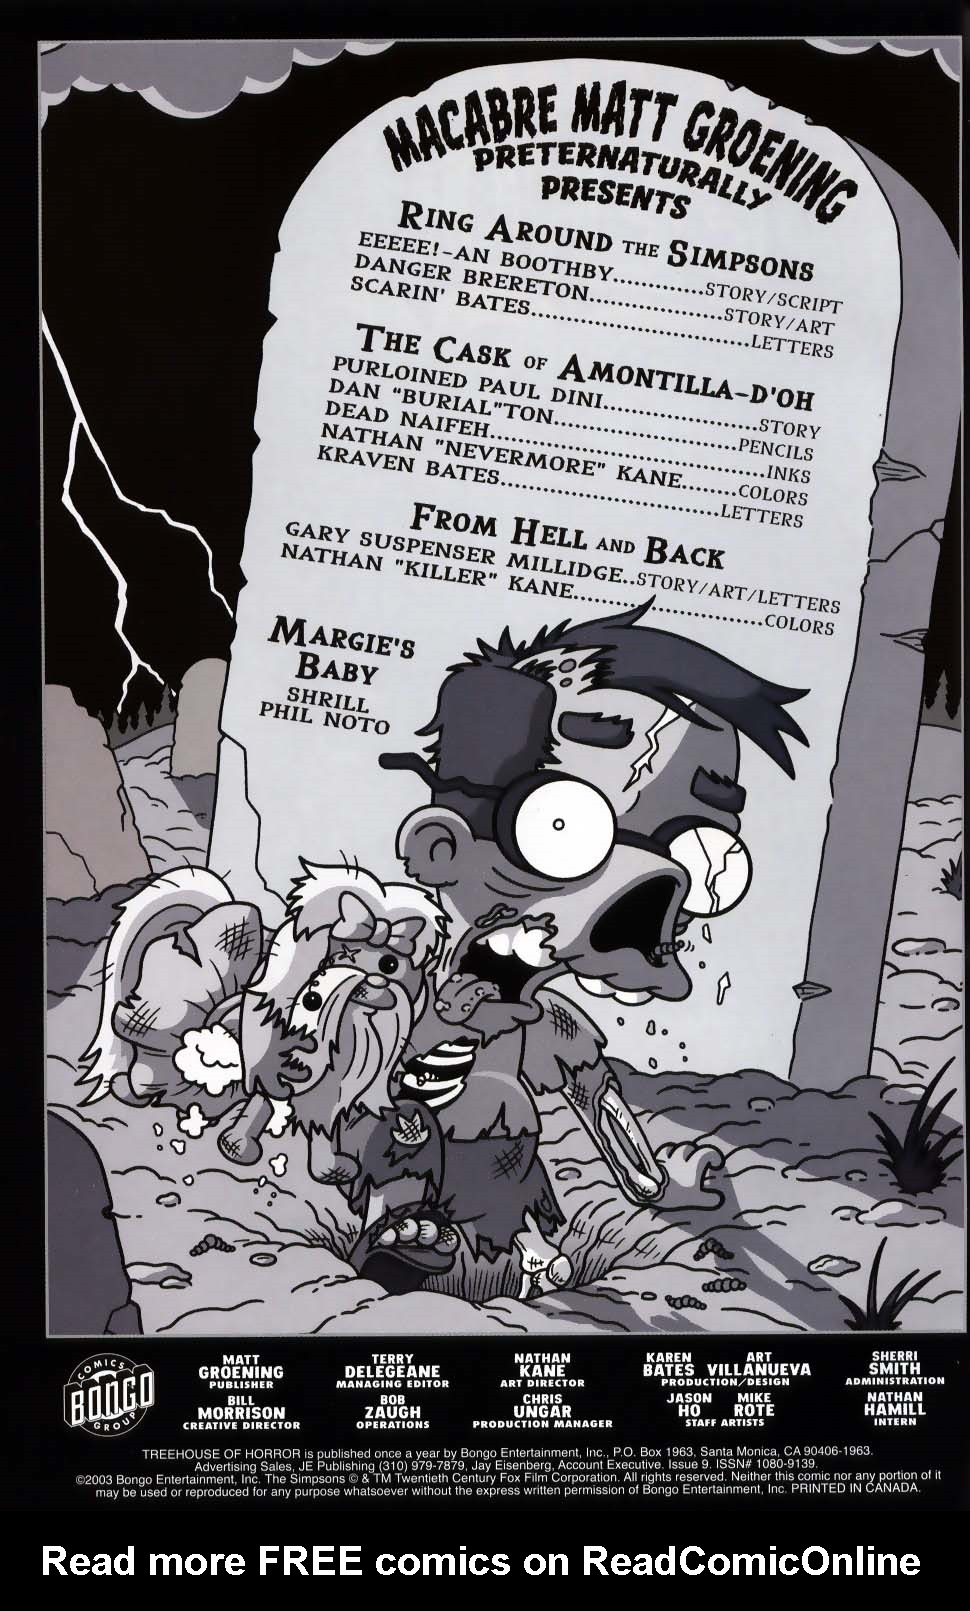 Read online Treehouse of Horror comic -  Issue #9 - 2